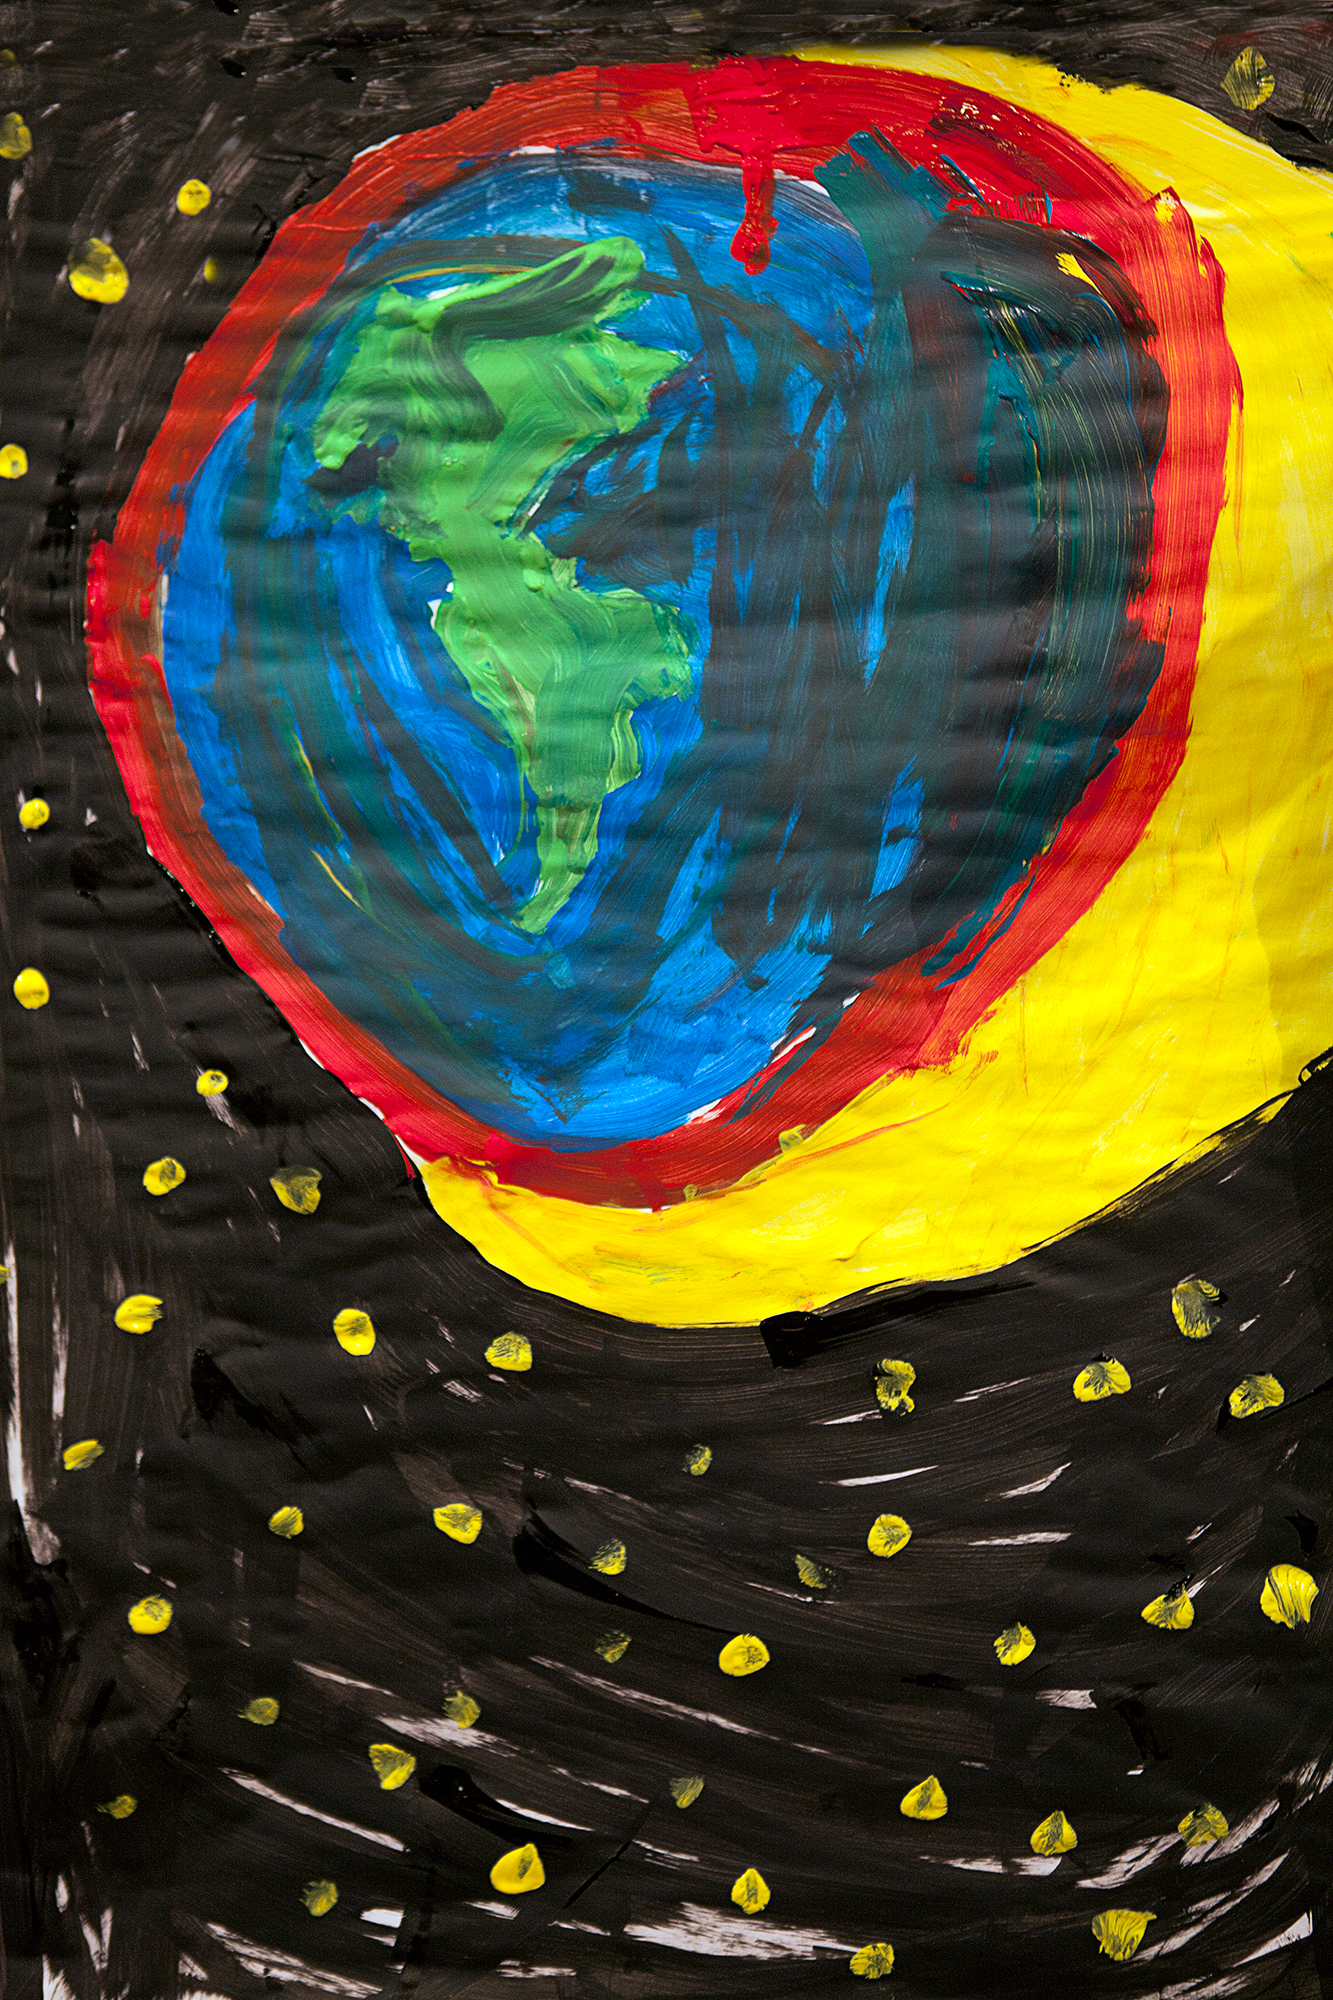 natal_future-perfect_kids-drawing-of-the-earth-hurtling-through-space_2000px